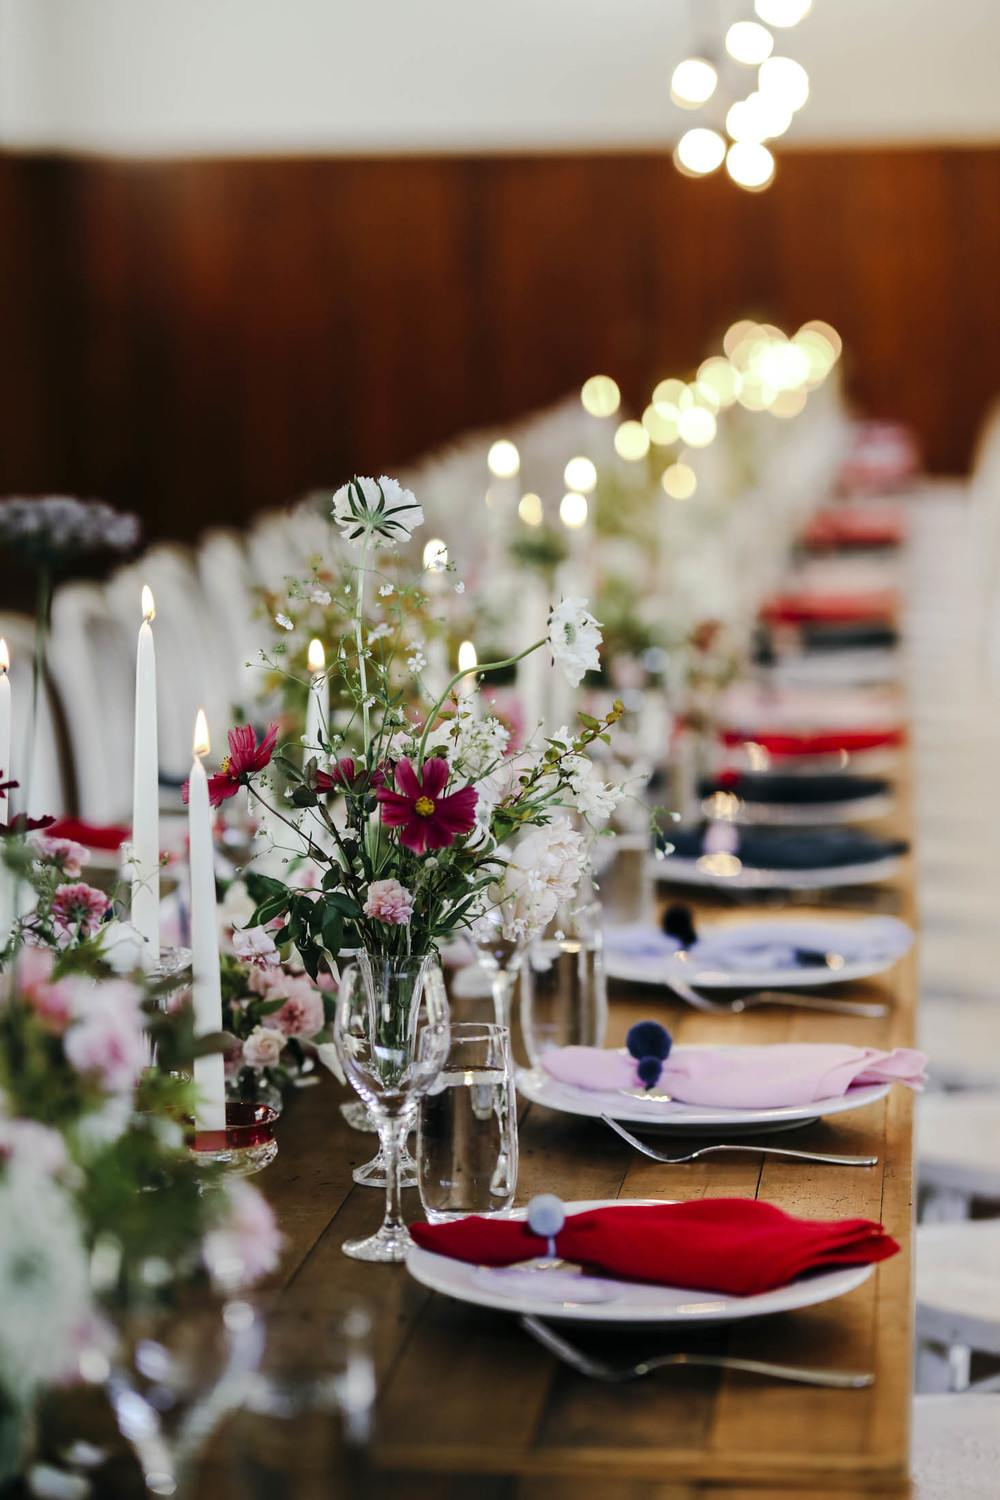 Autumn garden wedding. dahlias and roses.  Wild and organic floral wedding table styling